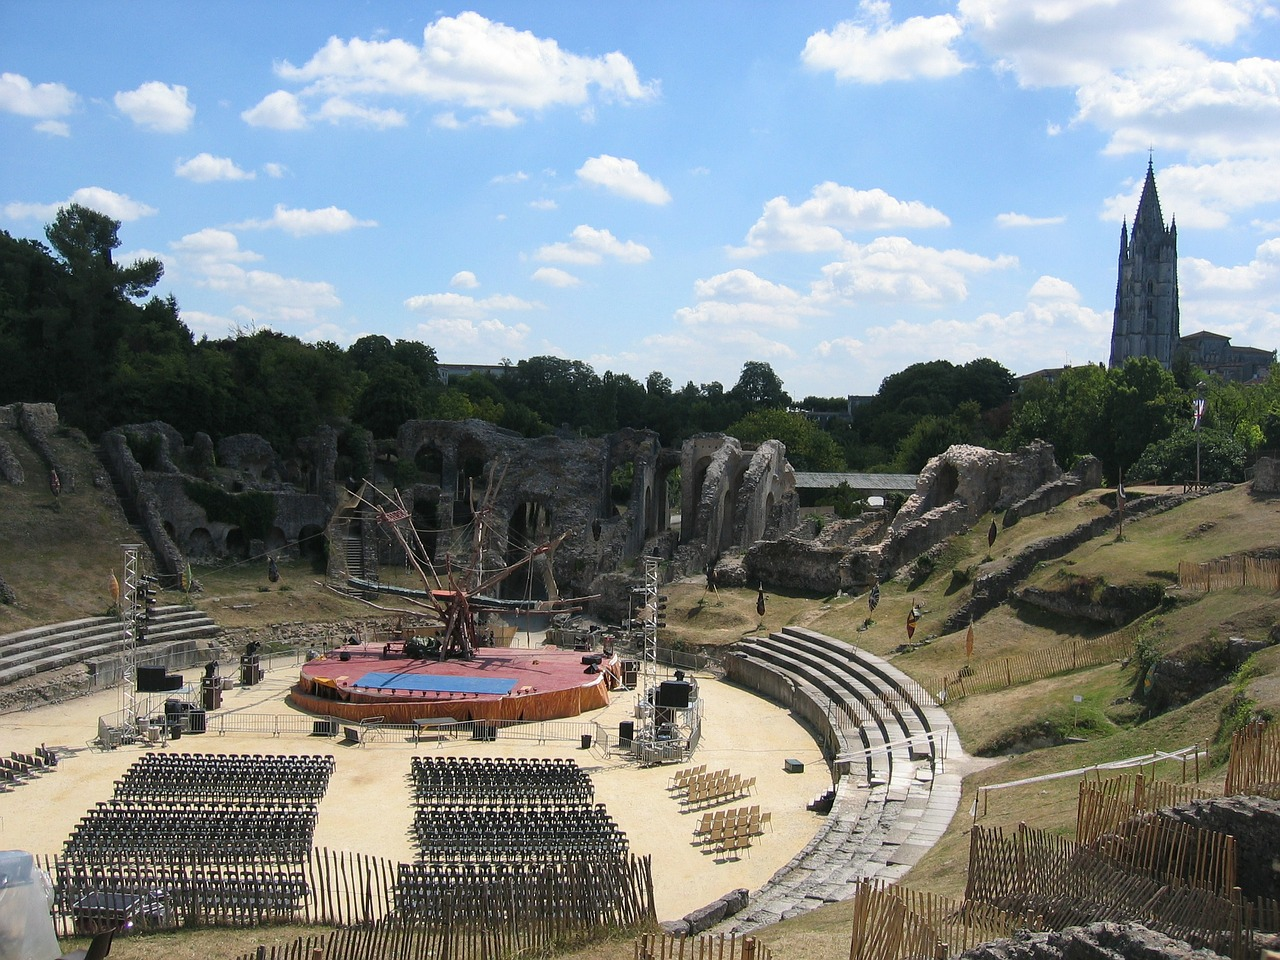 amphitheater,theater,stage,open air theatre,summer stage,free pictures, free photos, free images, royalty free, free illustrations, public domain